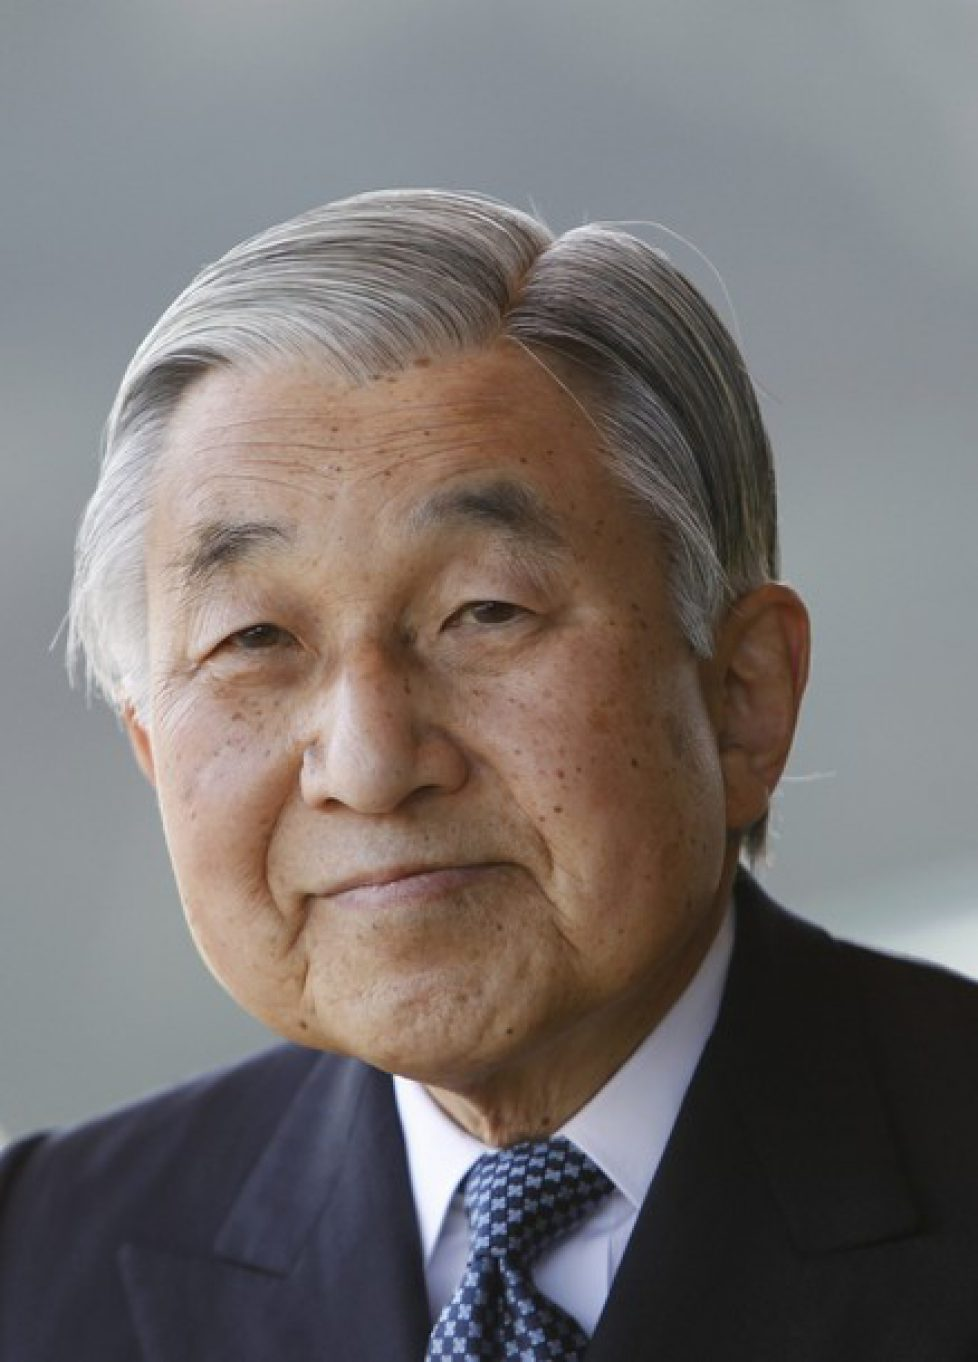 File photo of Japan's Emperor Akihito at the Imperial Palace in Tokyo